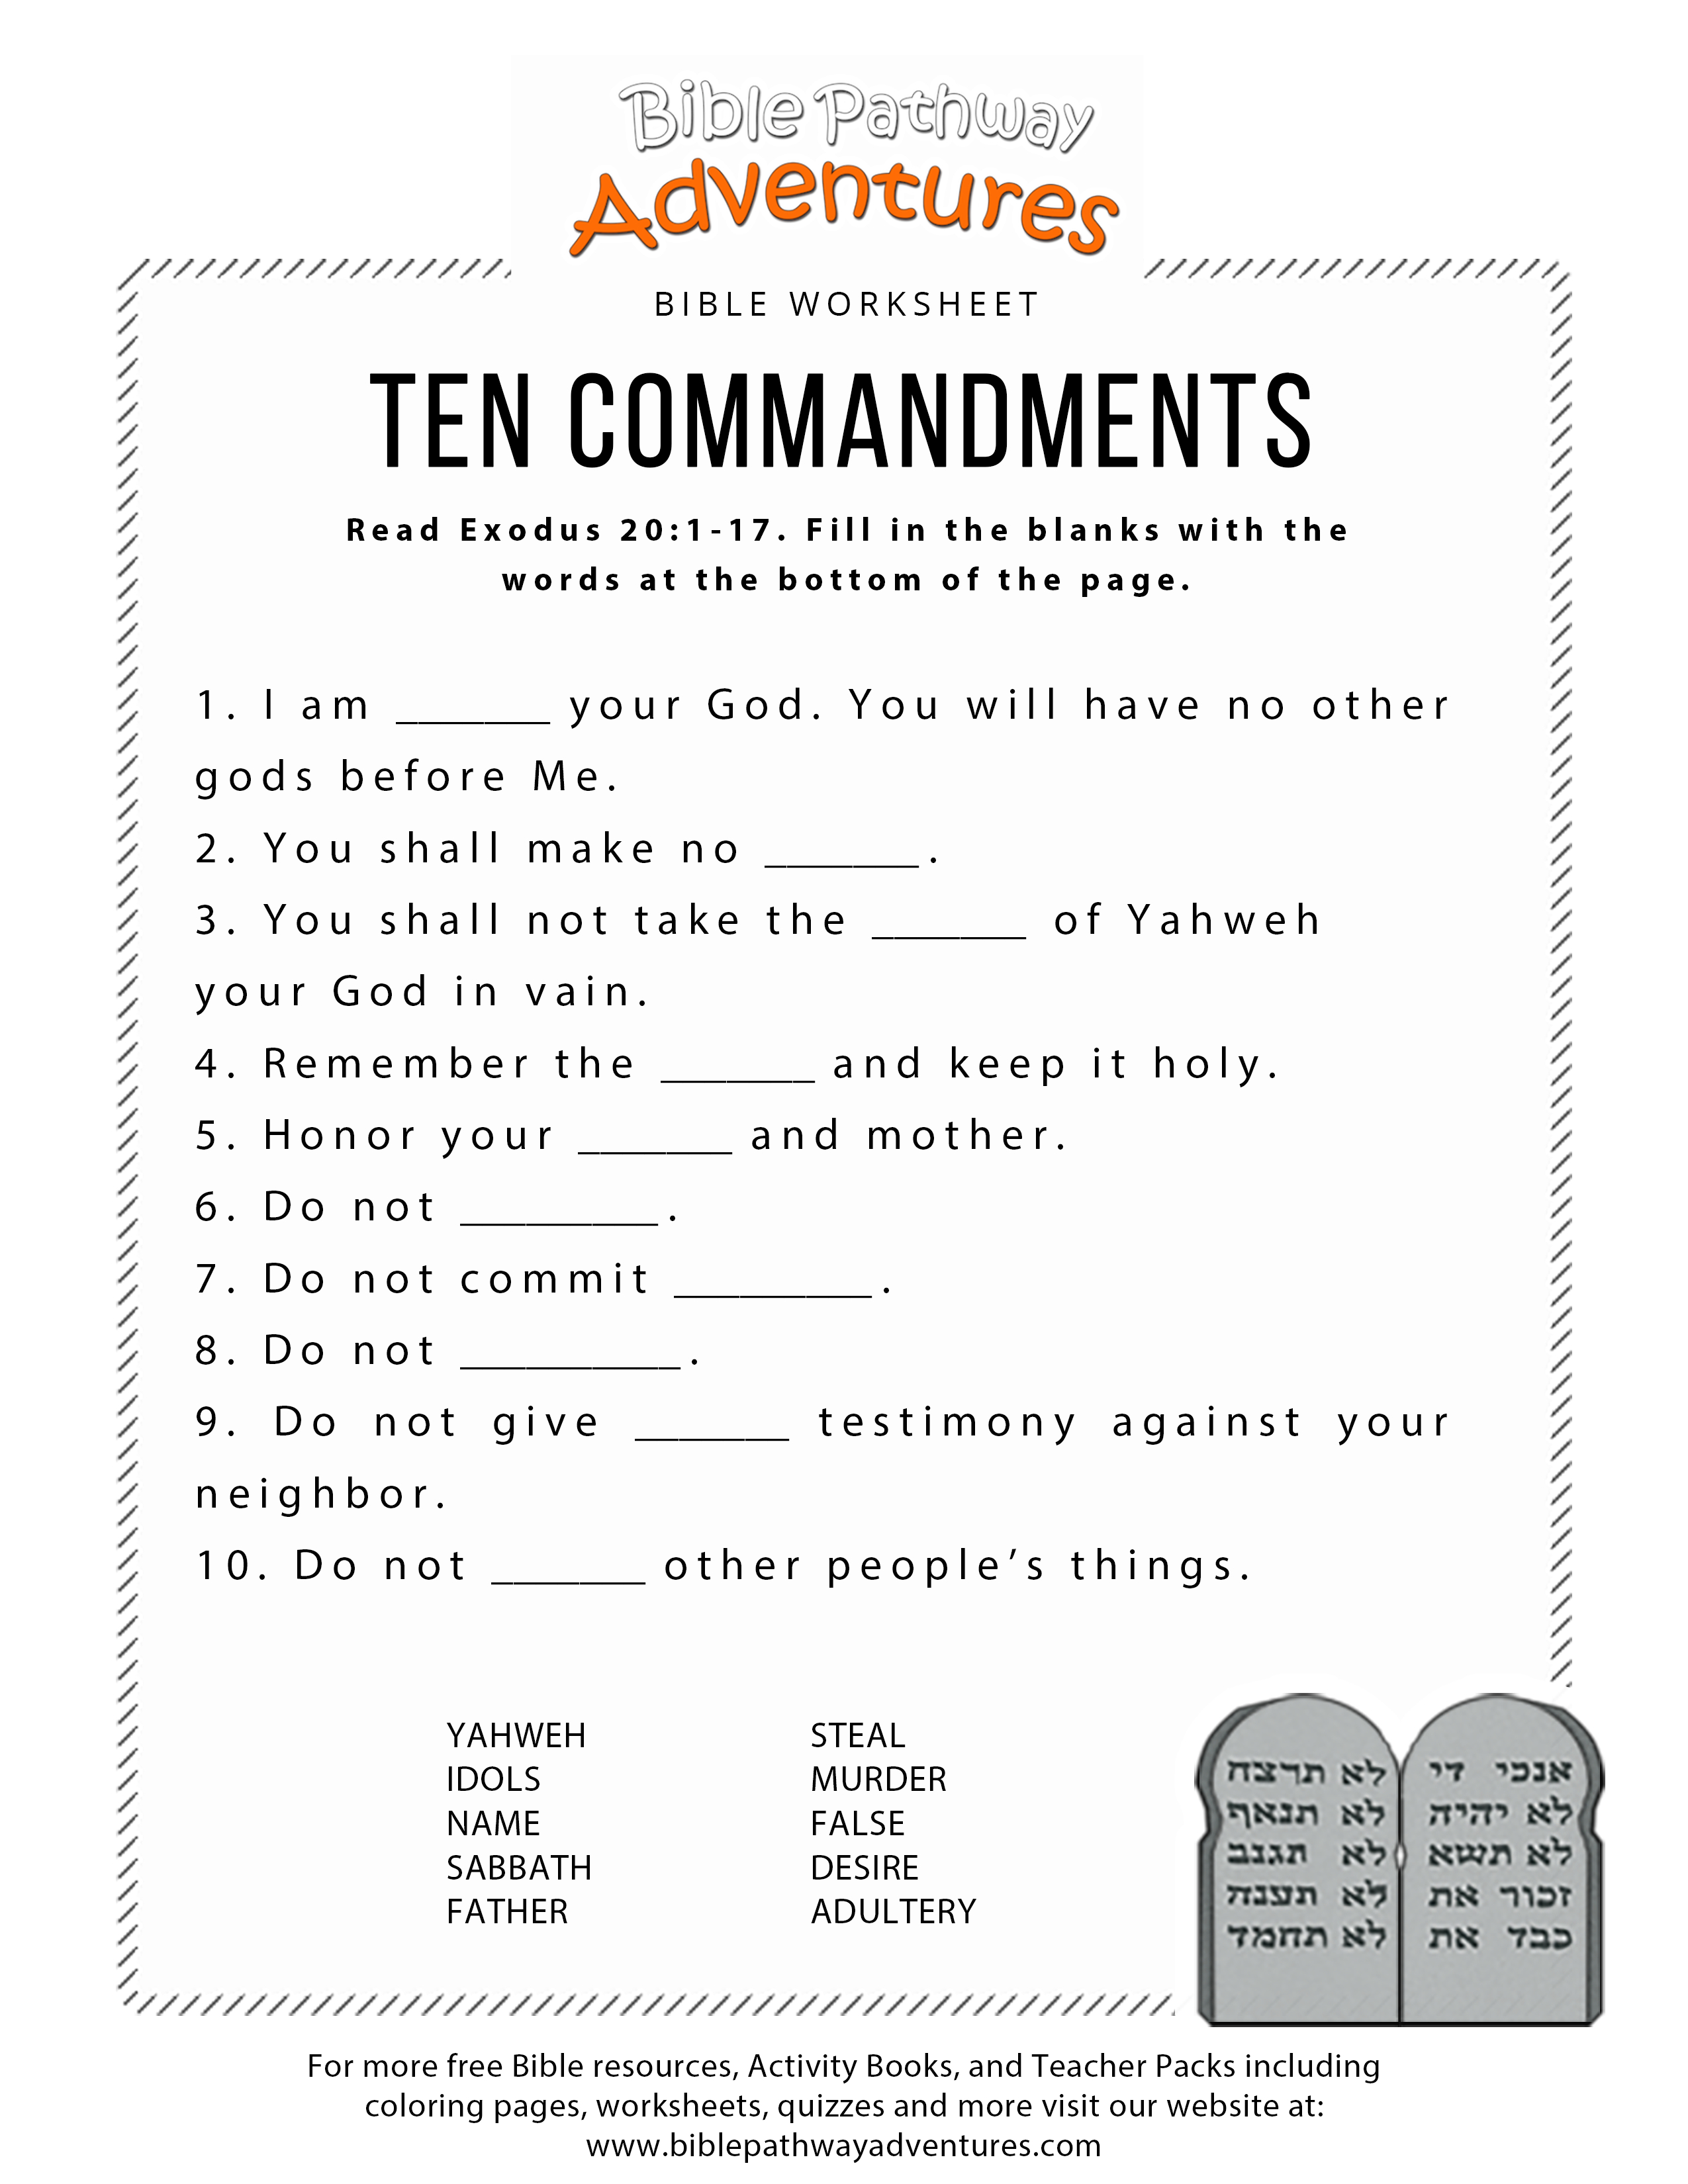 Ten Commandments Worksheet For Kids | Worksheets For Psr | Bible - Free Printable Bible Games For Youth